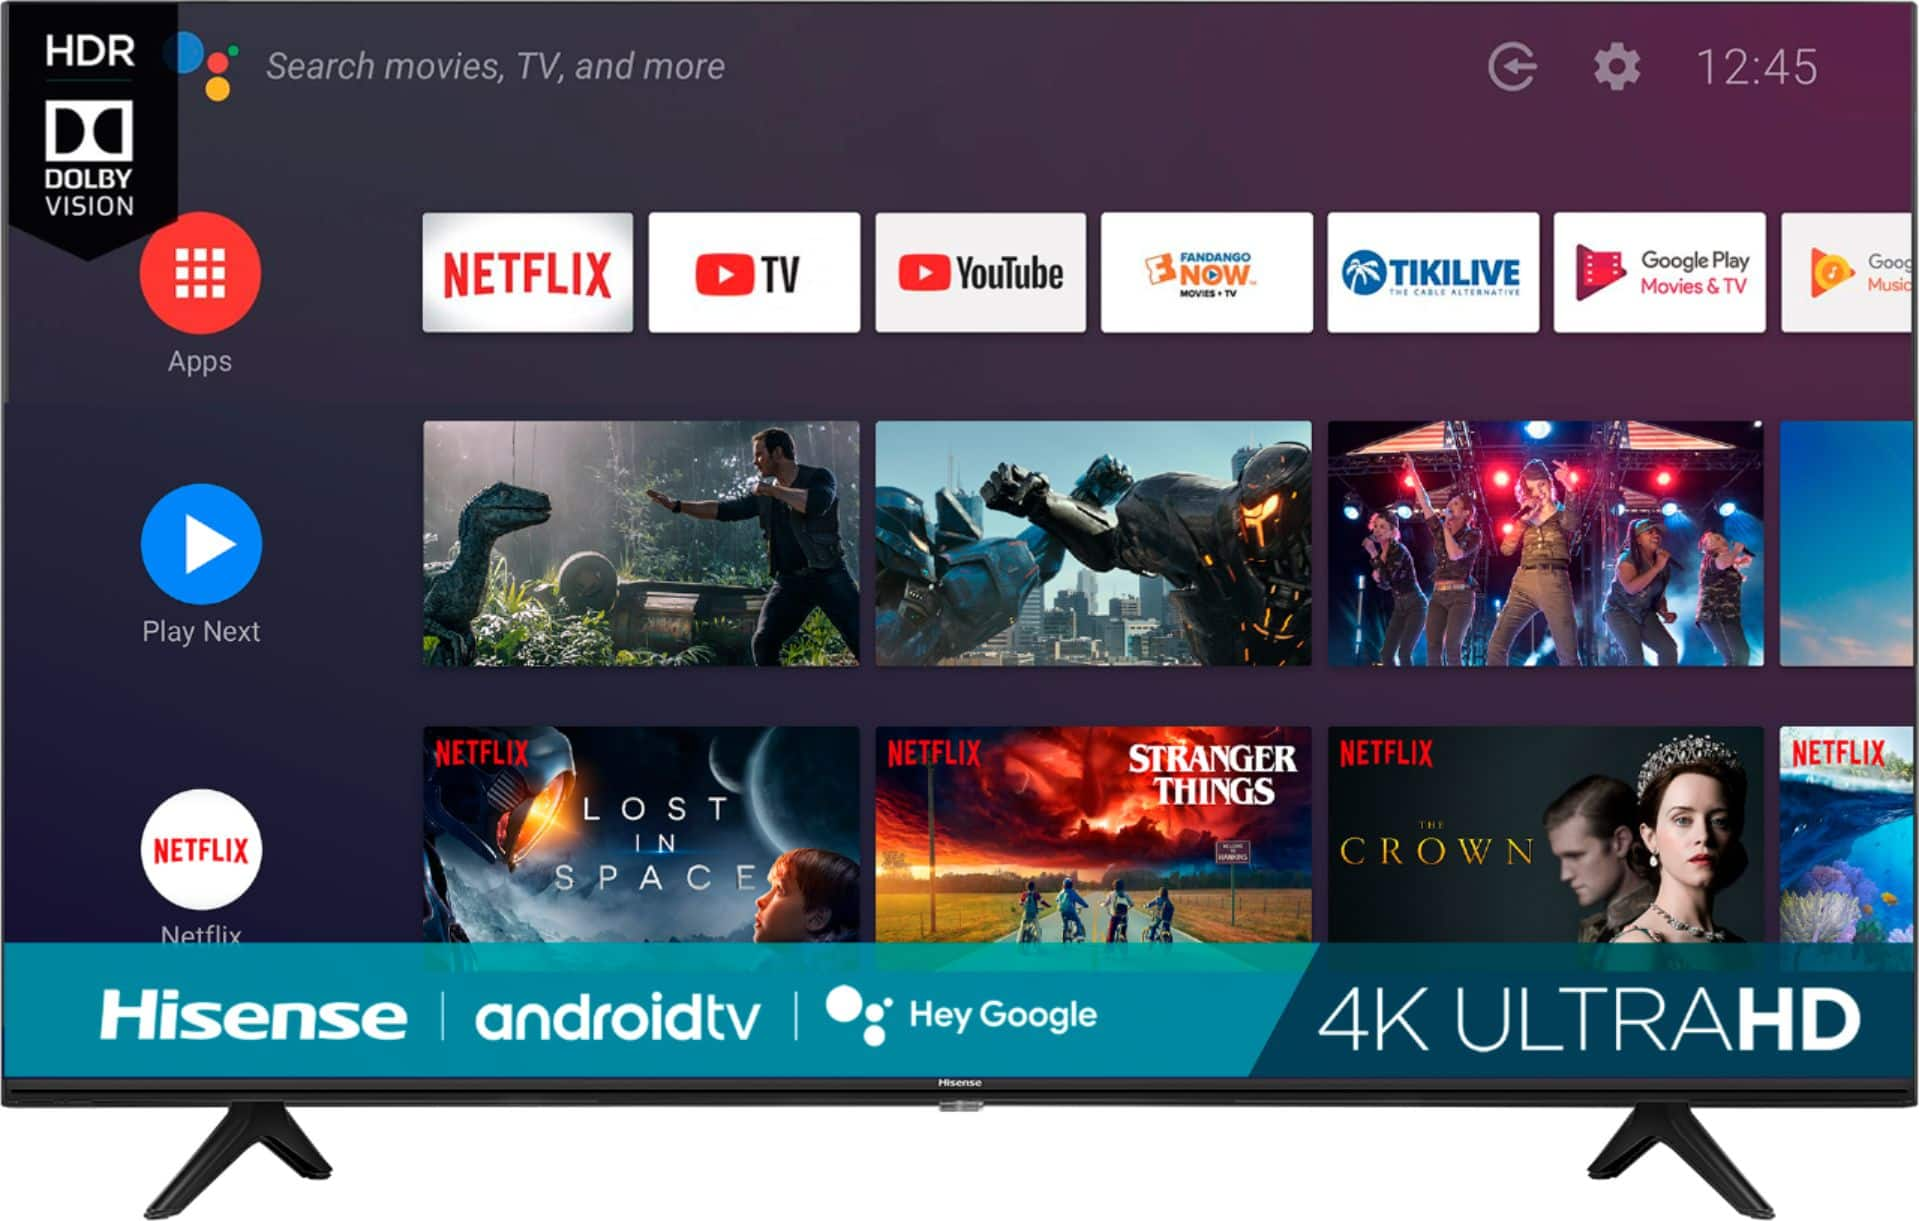 """Hisense - 55"""" Class H6510G Series LED 4K UHD Smart Android TV for $199 at Best Buy"""